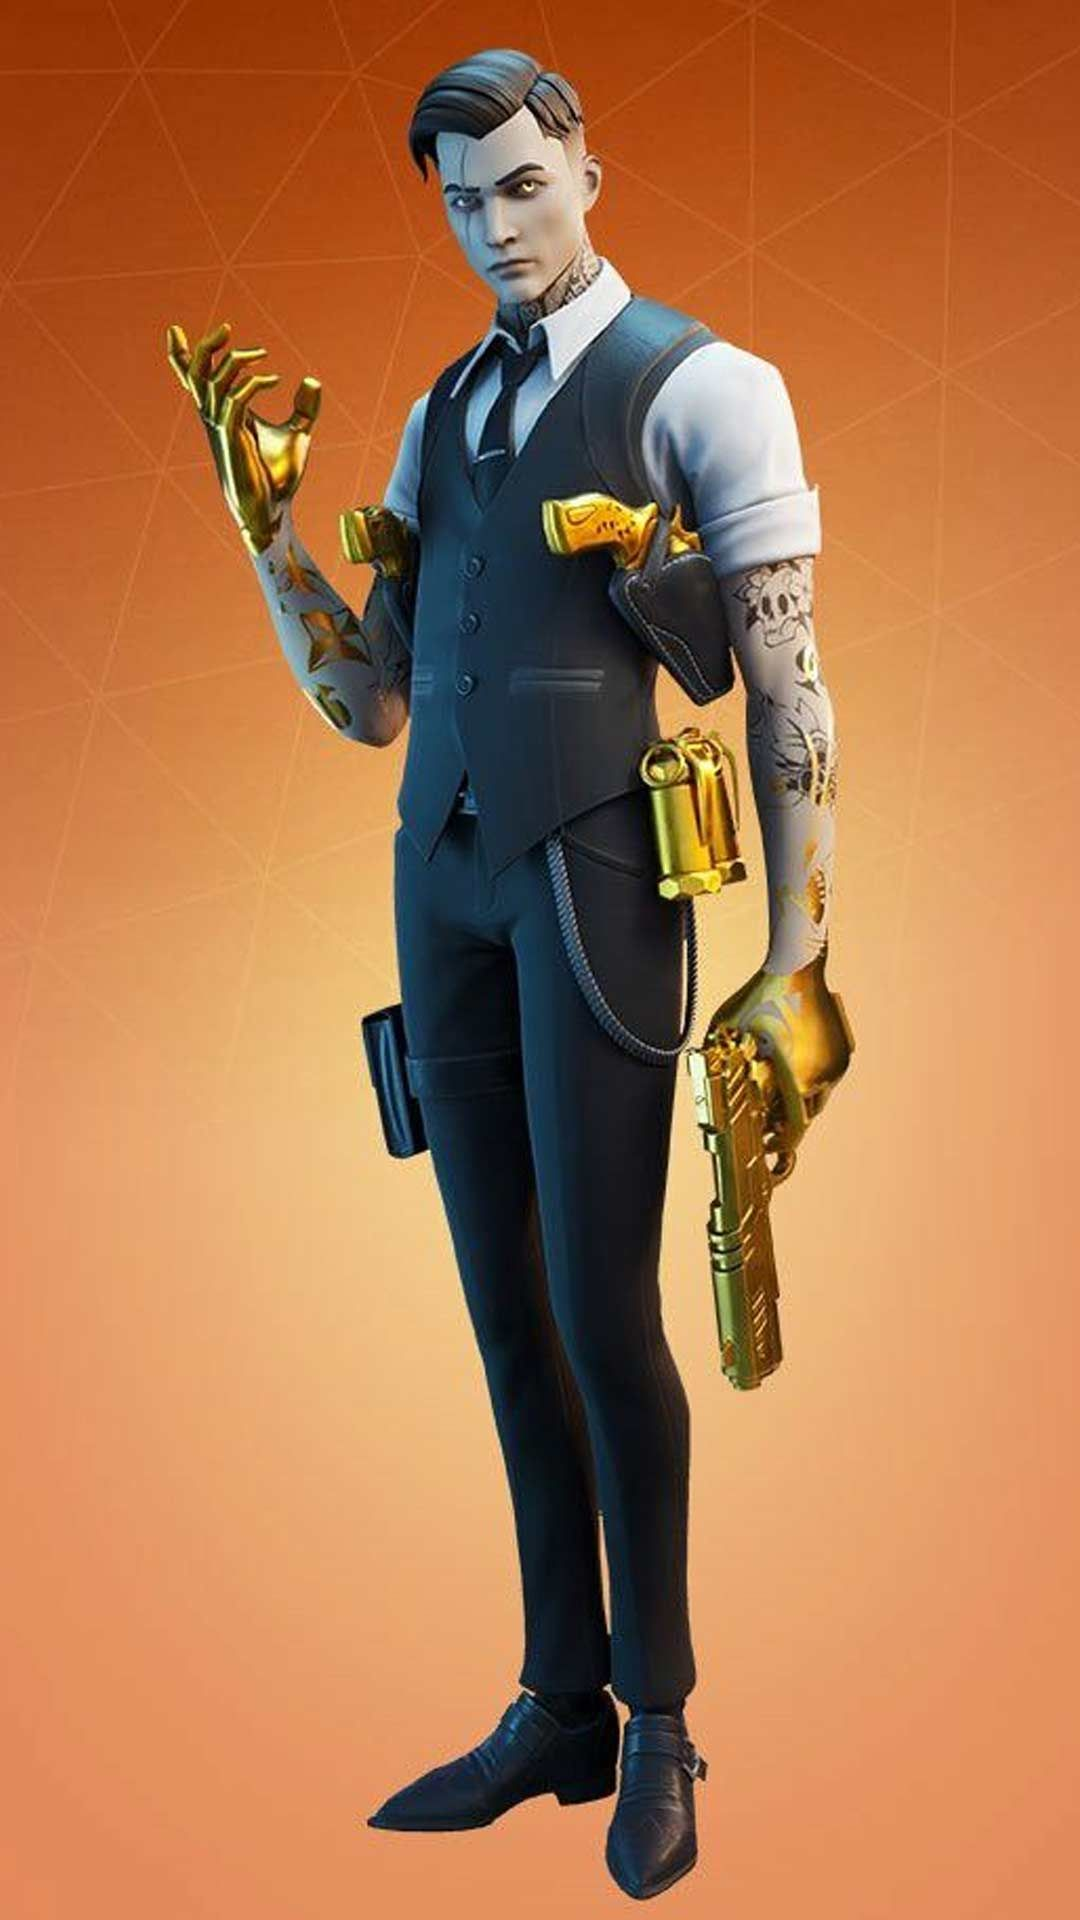 Midas Fortnite Skin Phone Wallpaper Download Hd Backgrounds For Iphone Android Lock Screen In 2020 Skin Images Best Gaming Wallpapers Hd Backgrounds